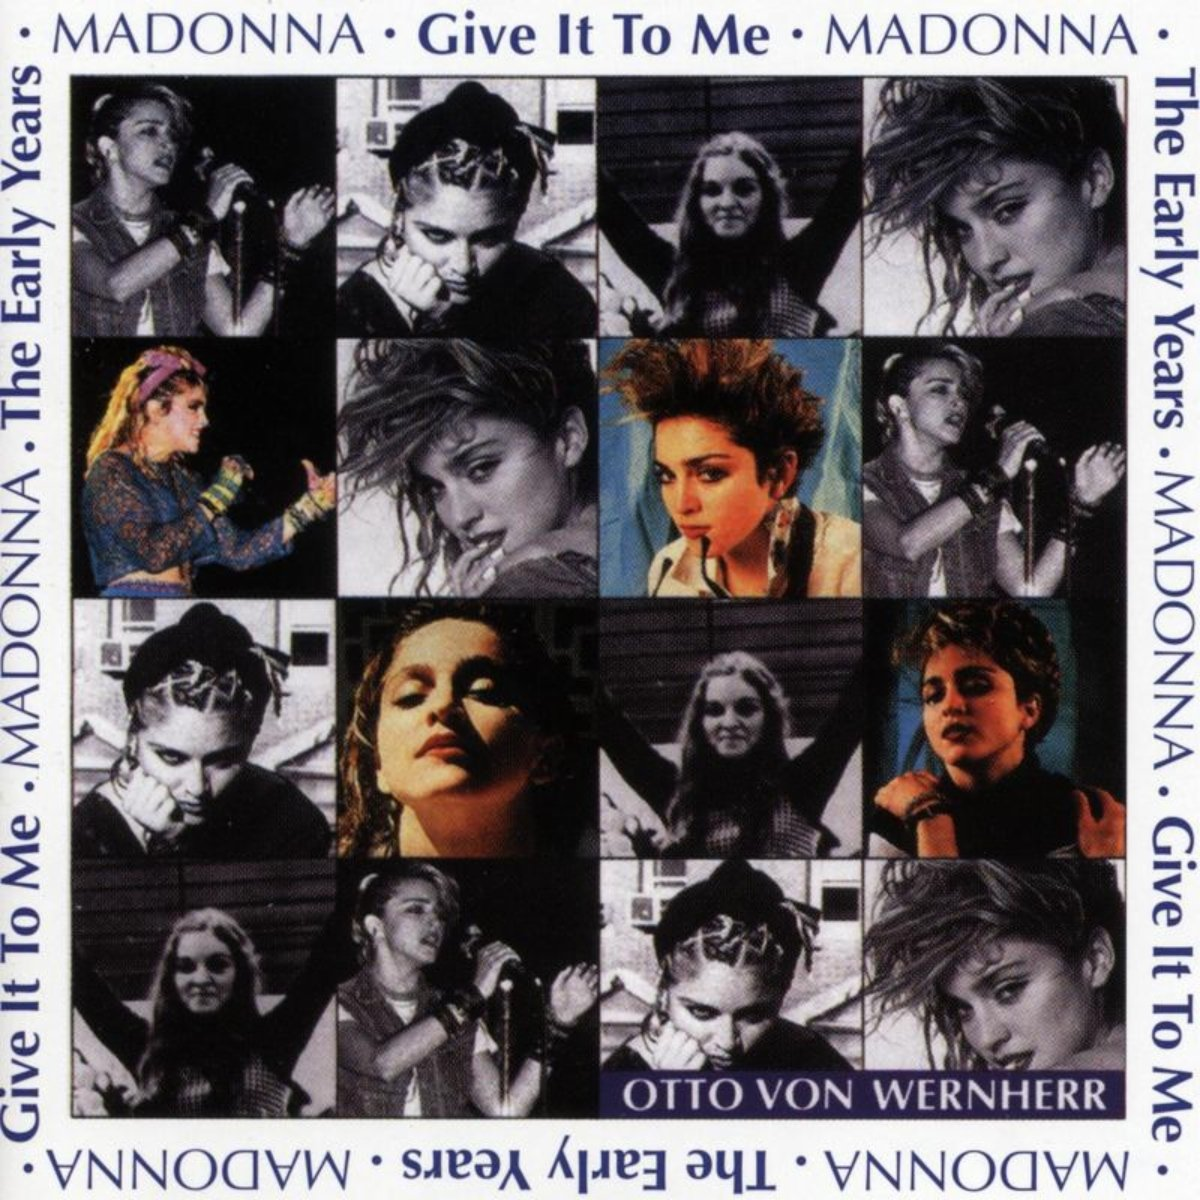 Madonna & Otto Von Wernherr - The Early Years - Give It To Me (1991) [FLAC] Download